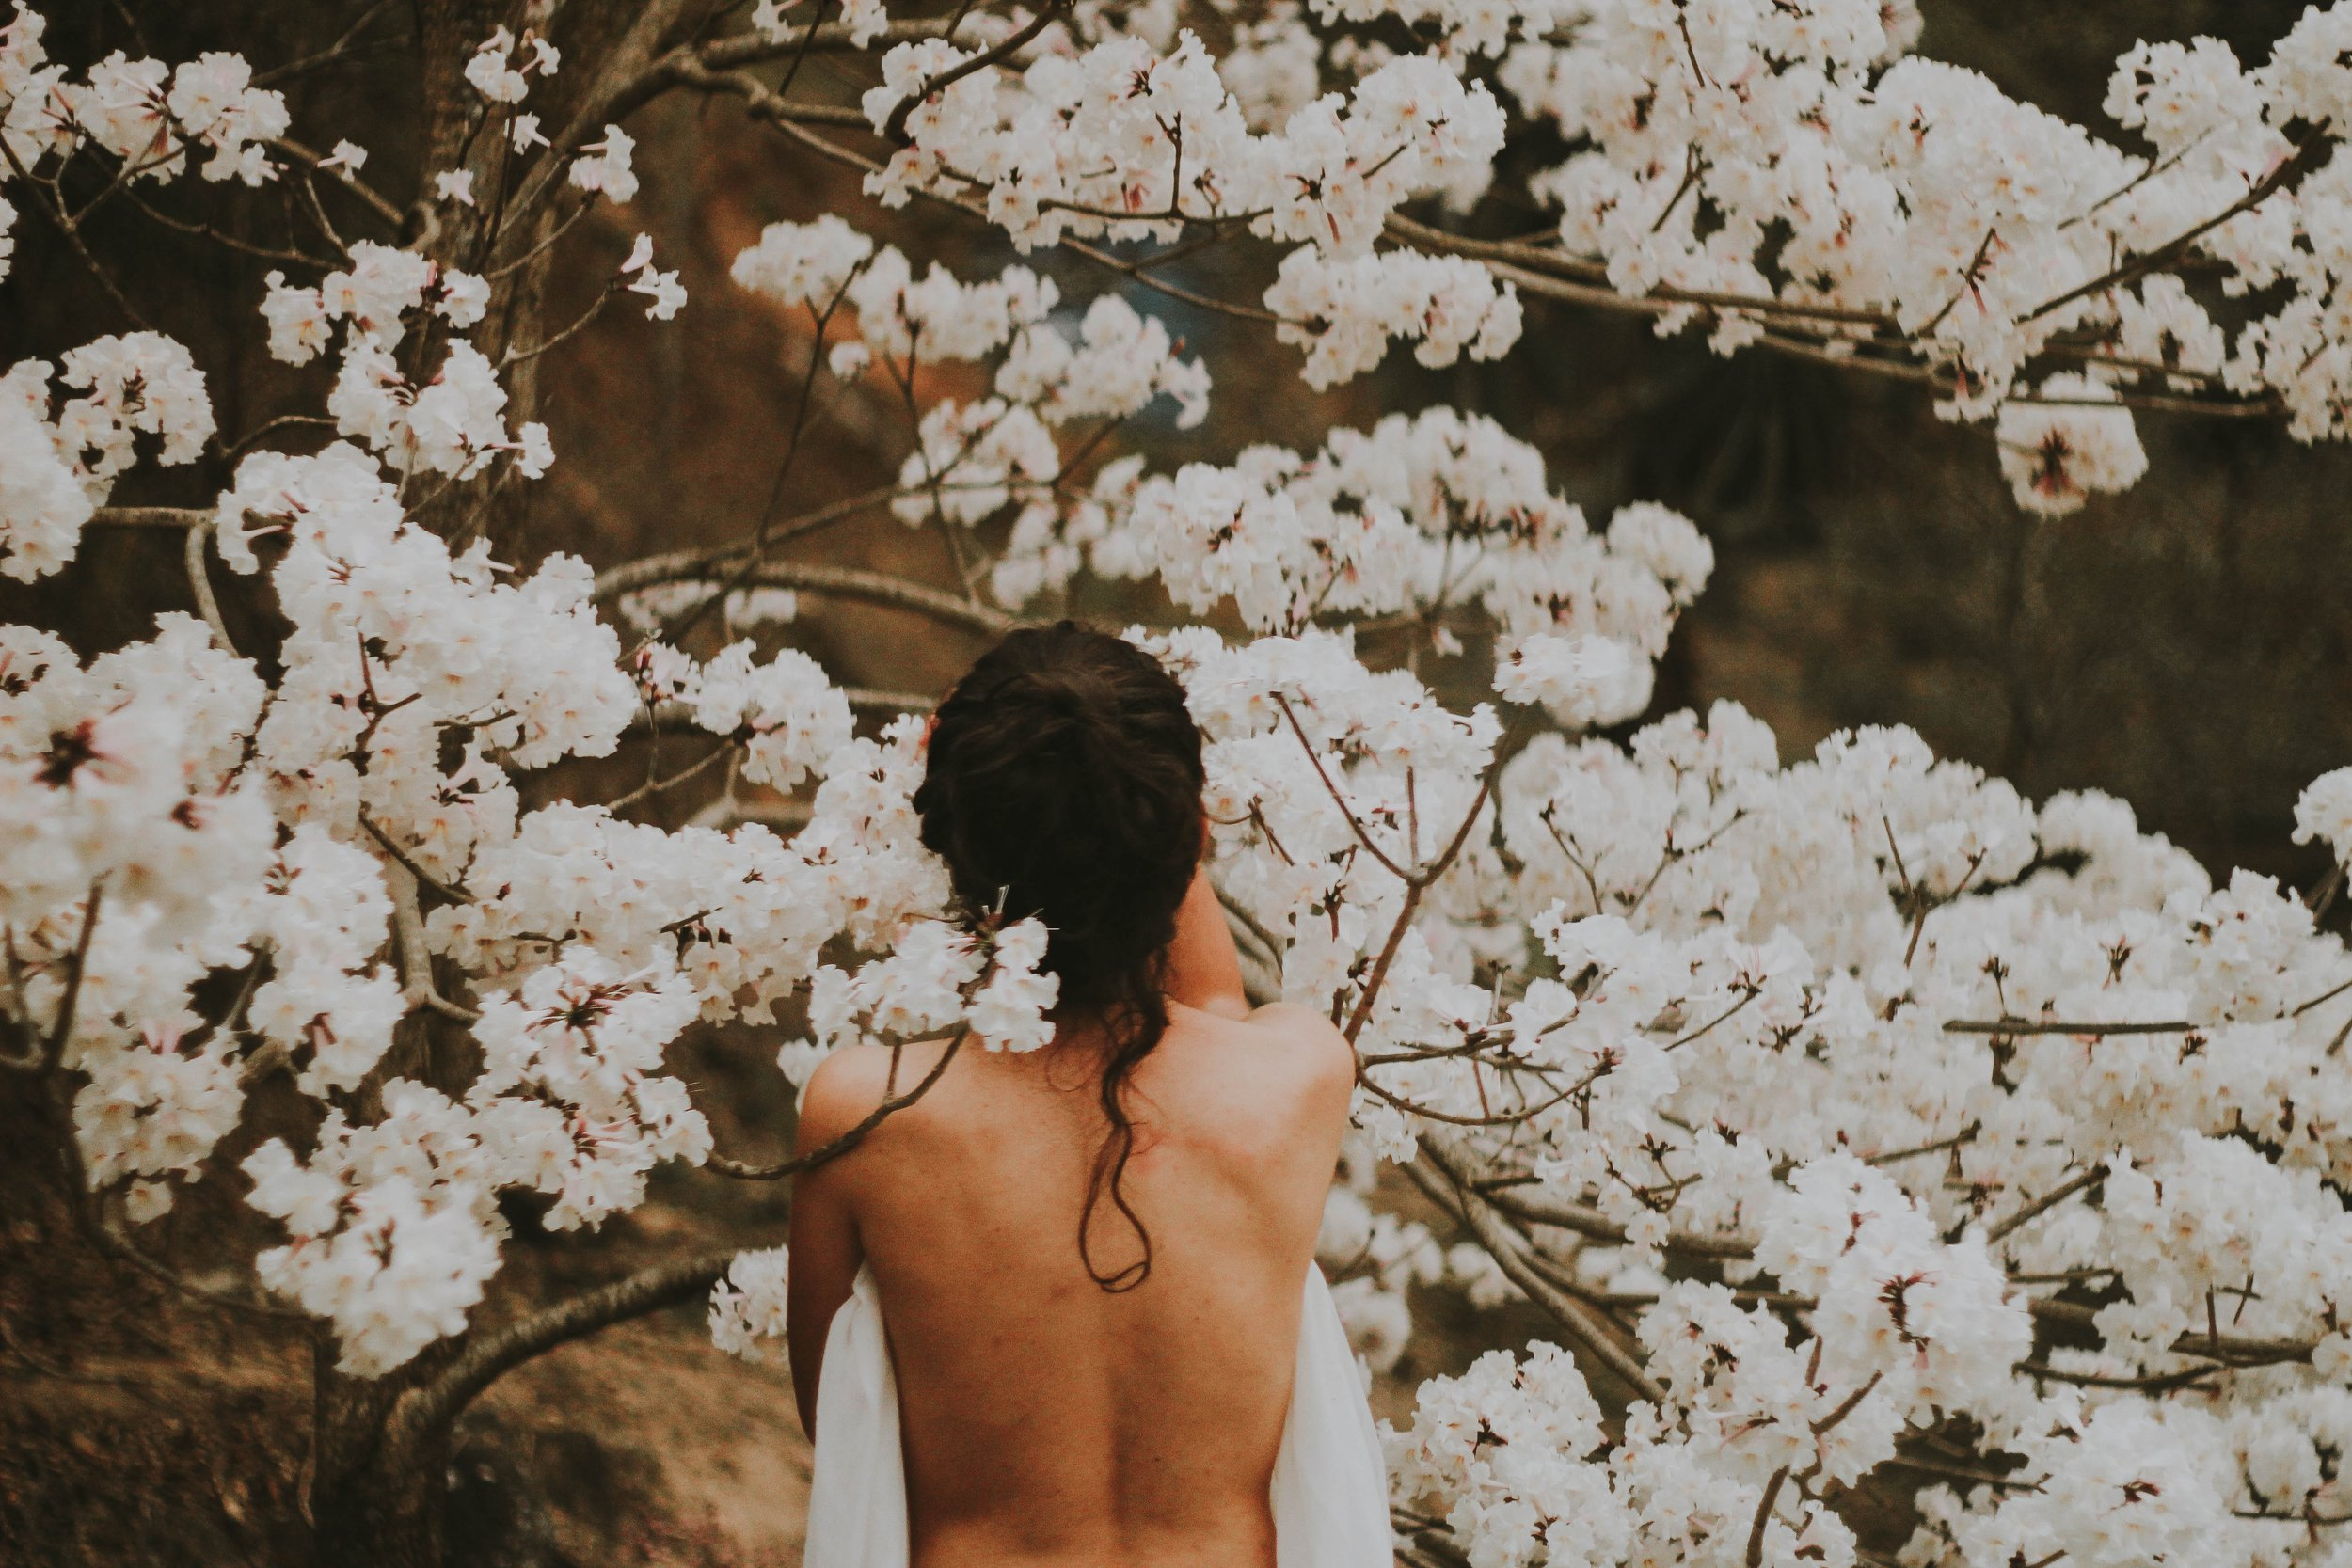 A young woman with her back to the camera, in front of a tree with white blossoms.